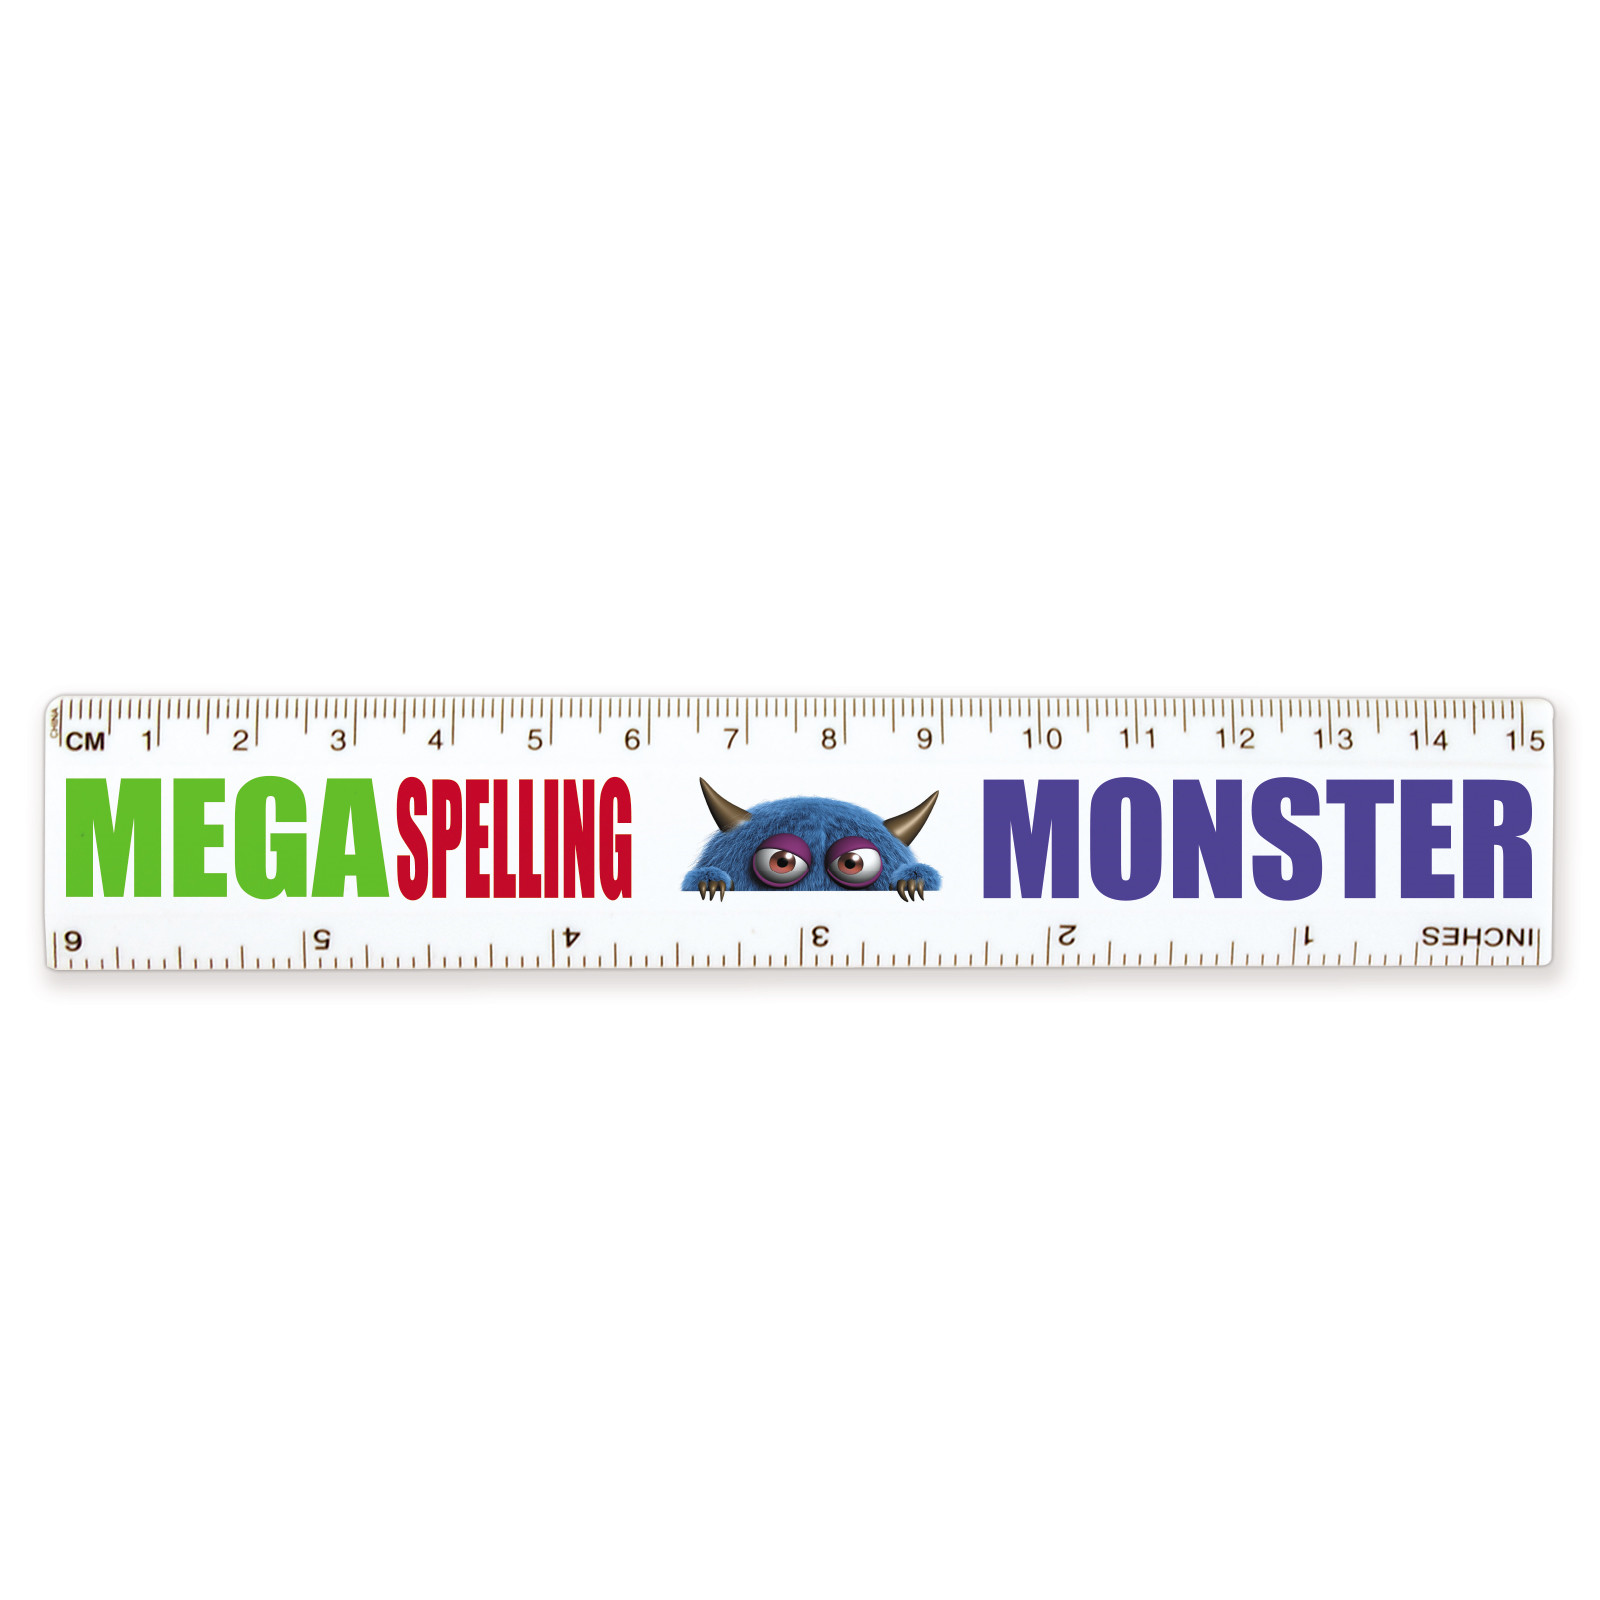 Promotional Product * 15cm White Plastic Ruler